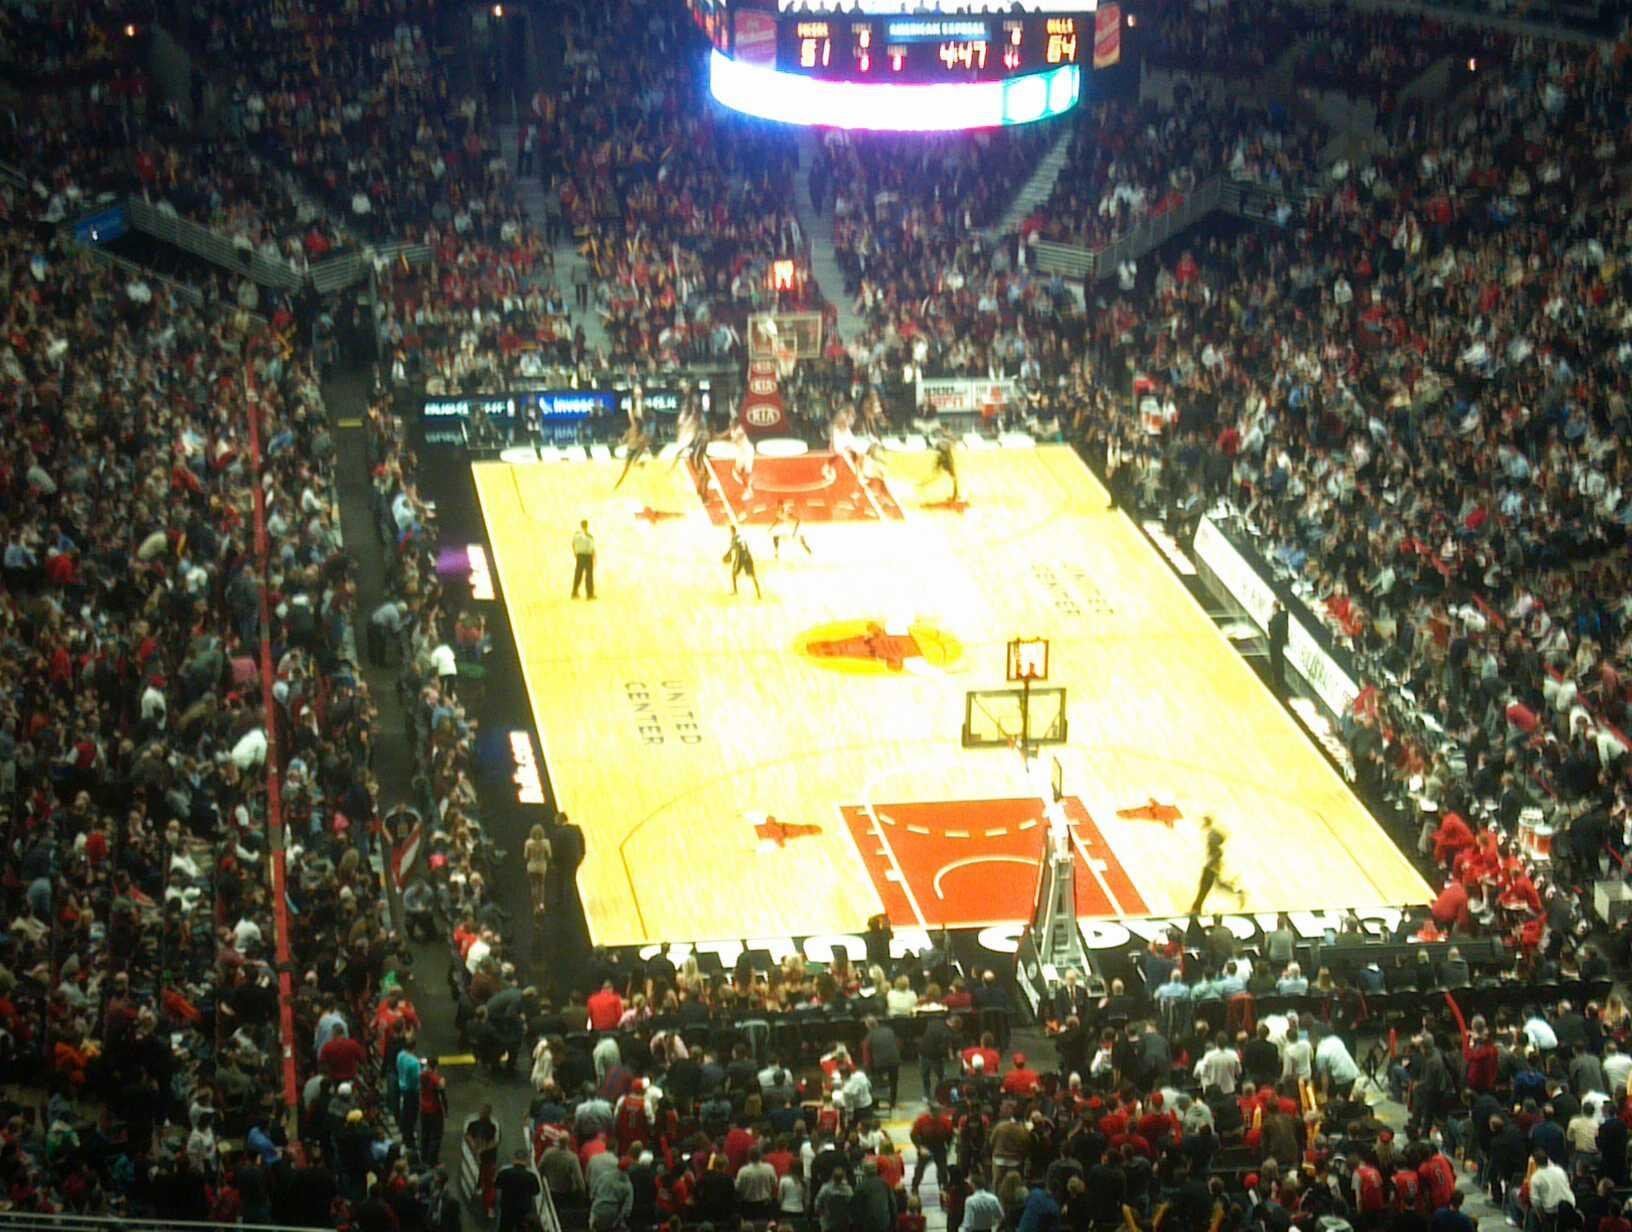 United Center Section 310 Row 15 Seat 18